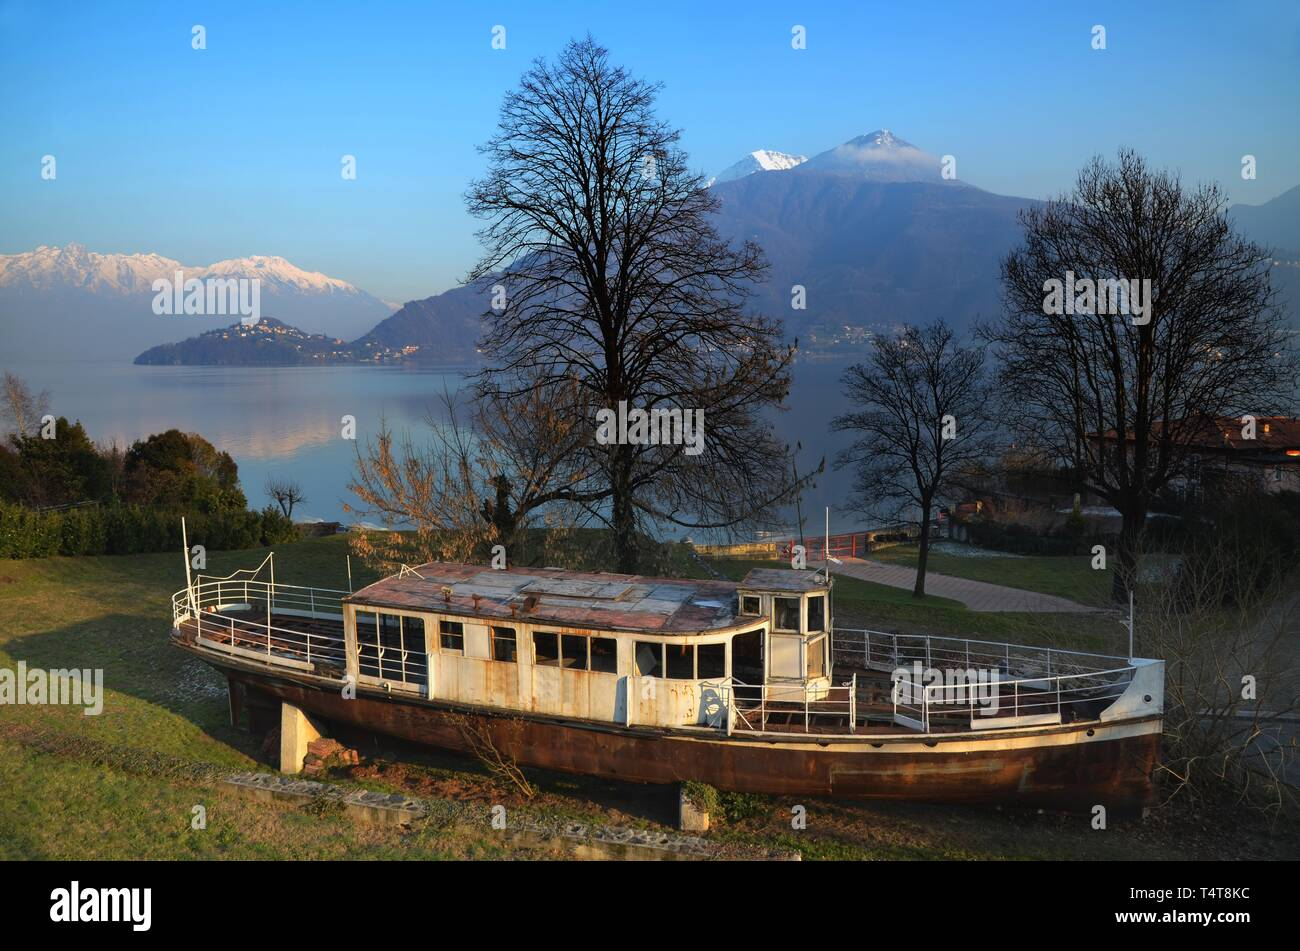 Old passenger ship on the field and trees with branches and alpine lake with snow-capped mountain in Lombardy, Italy. - Stock Image